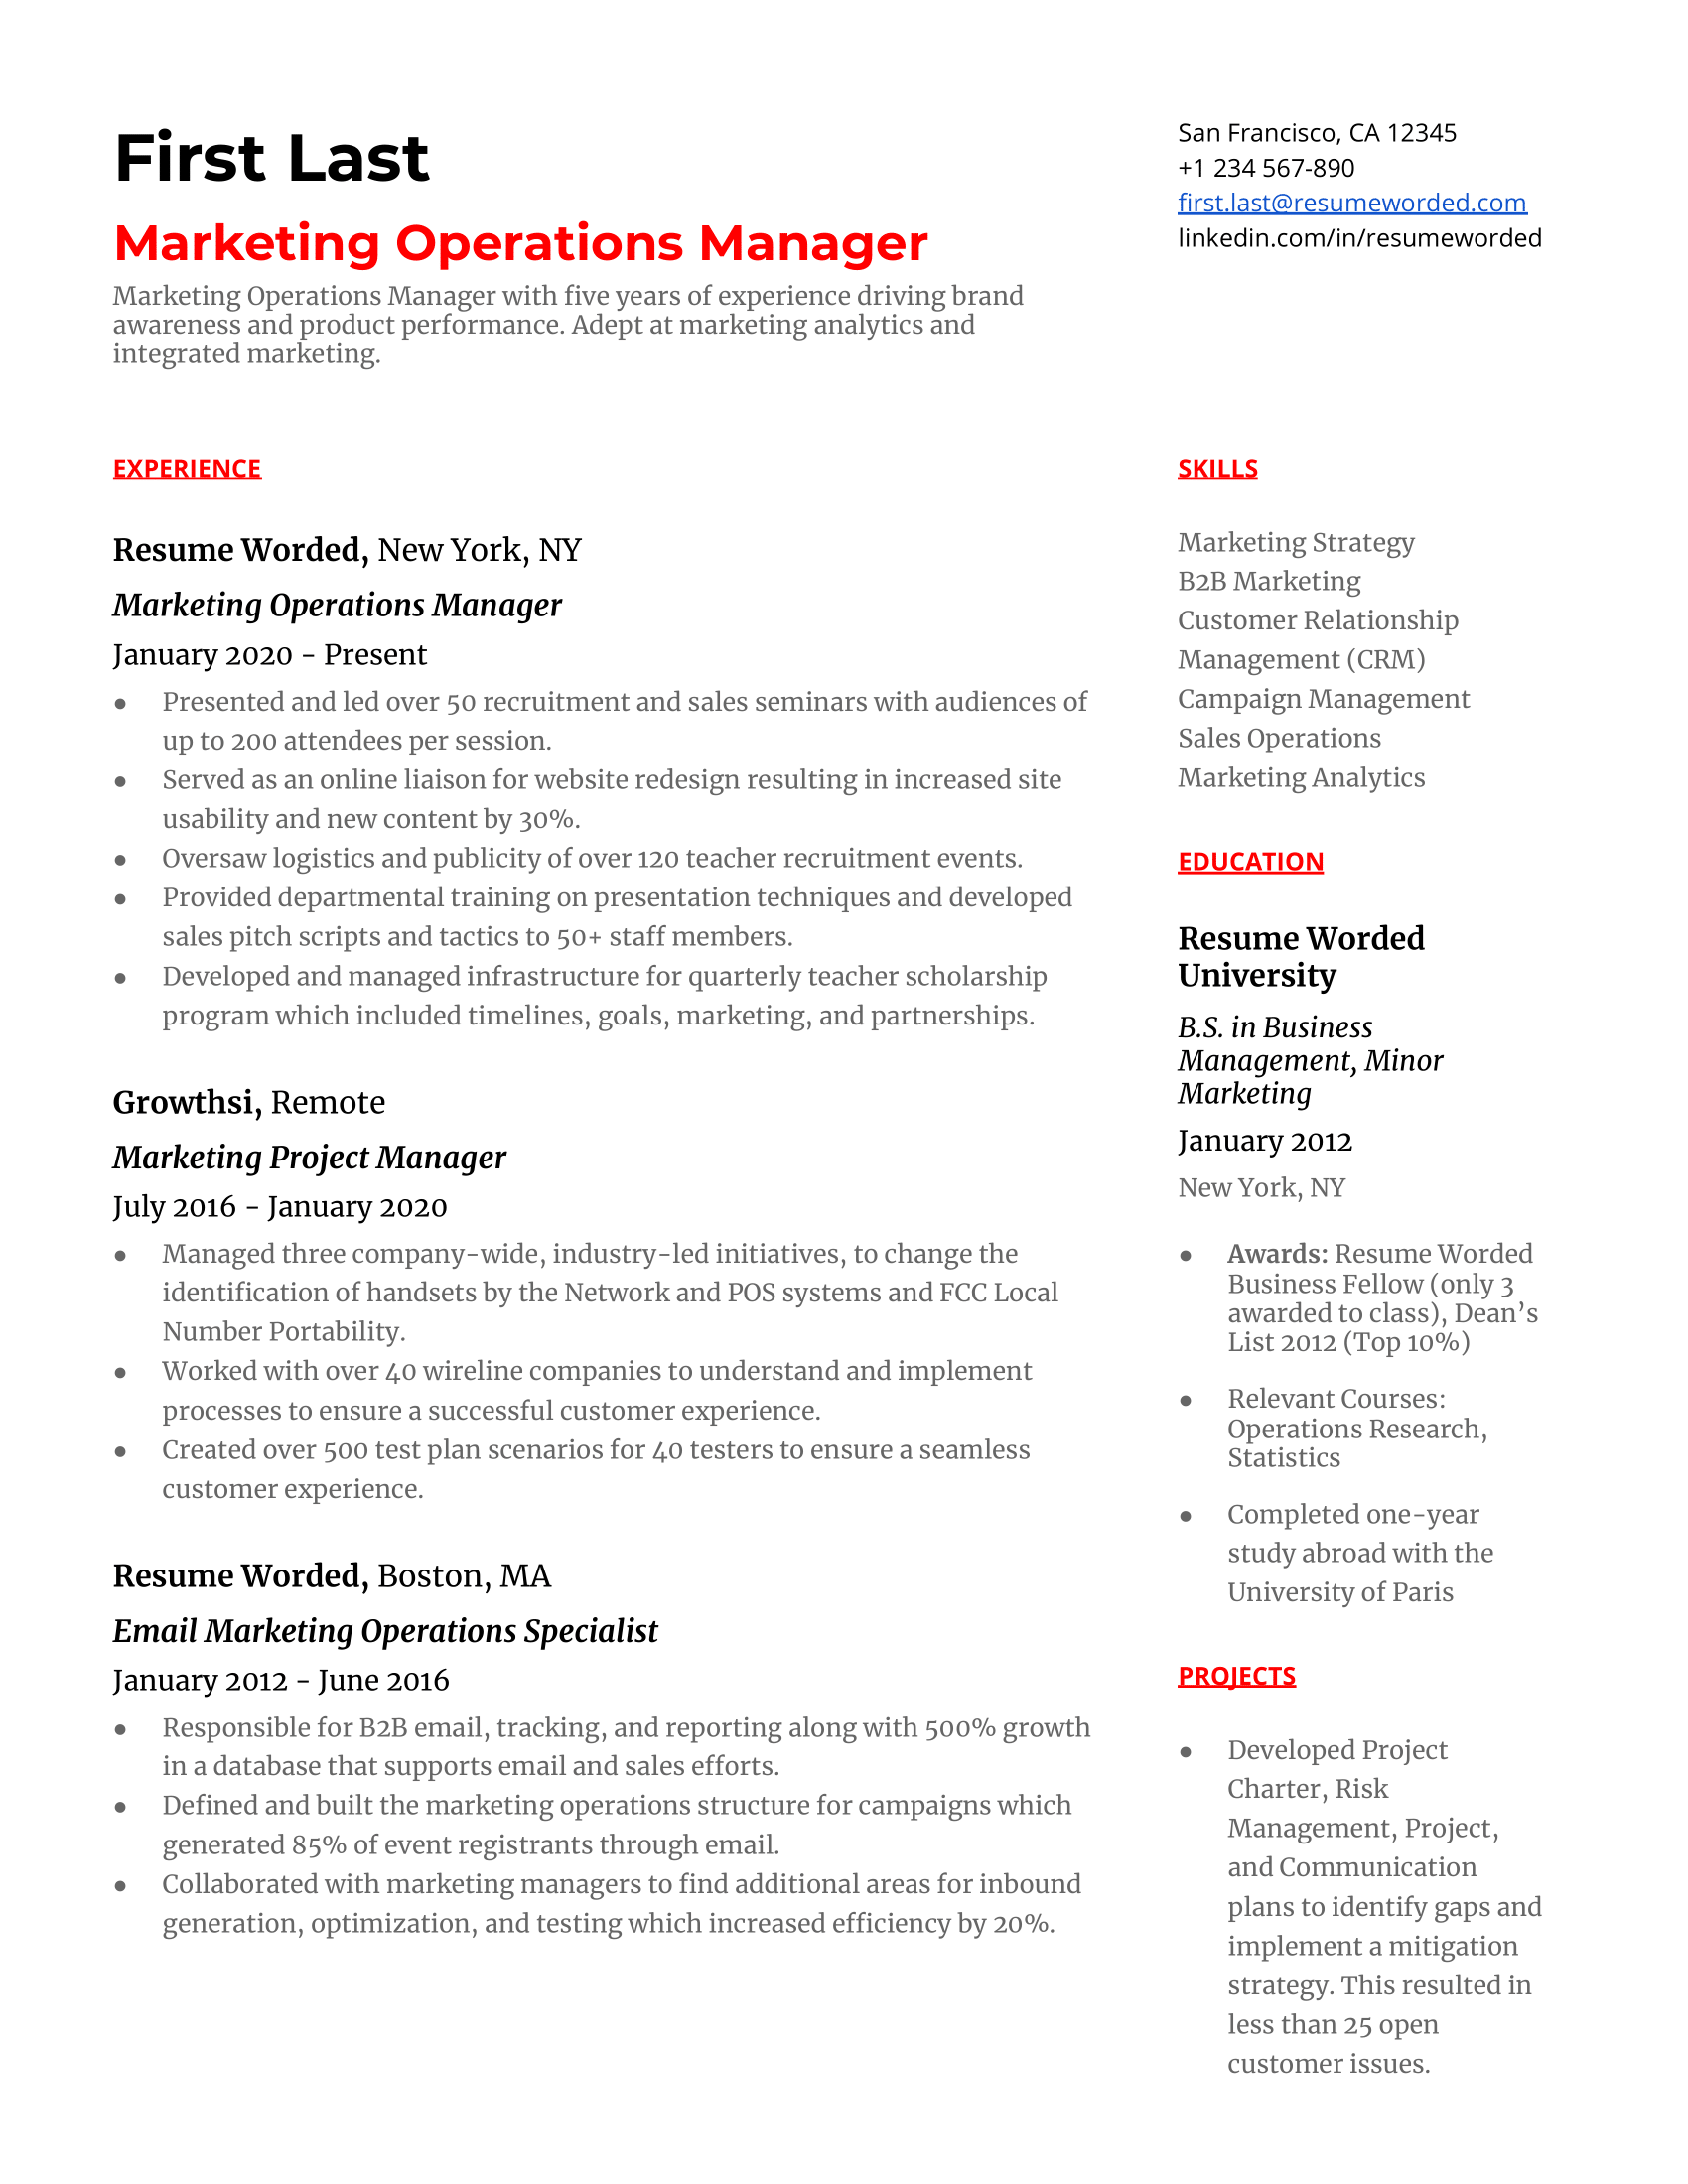 Marketing Operations Manager Resume Sample